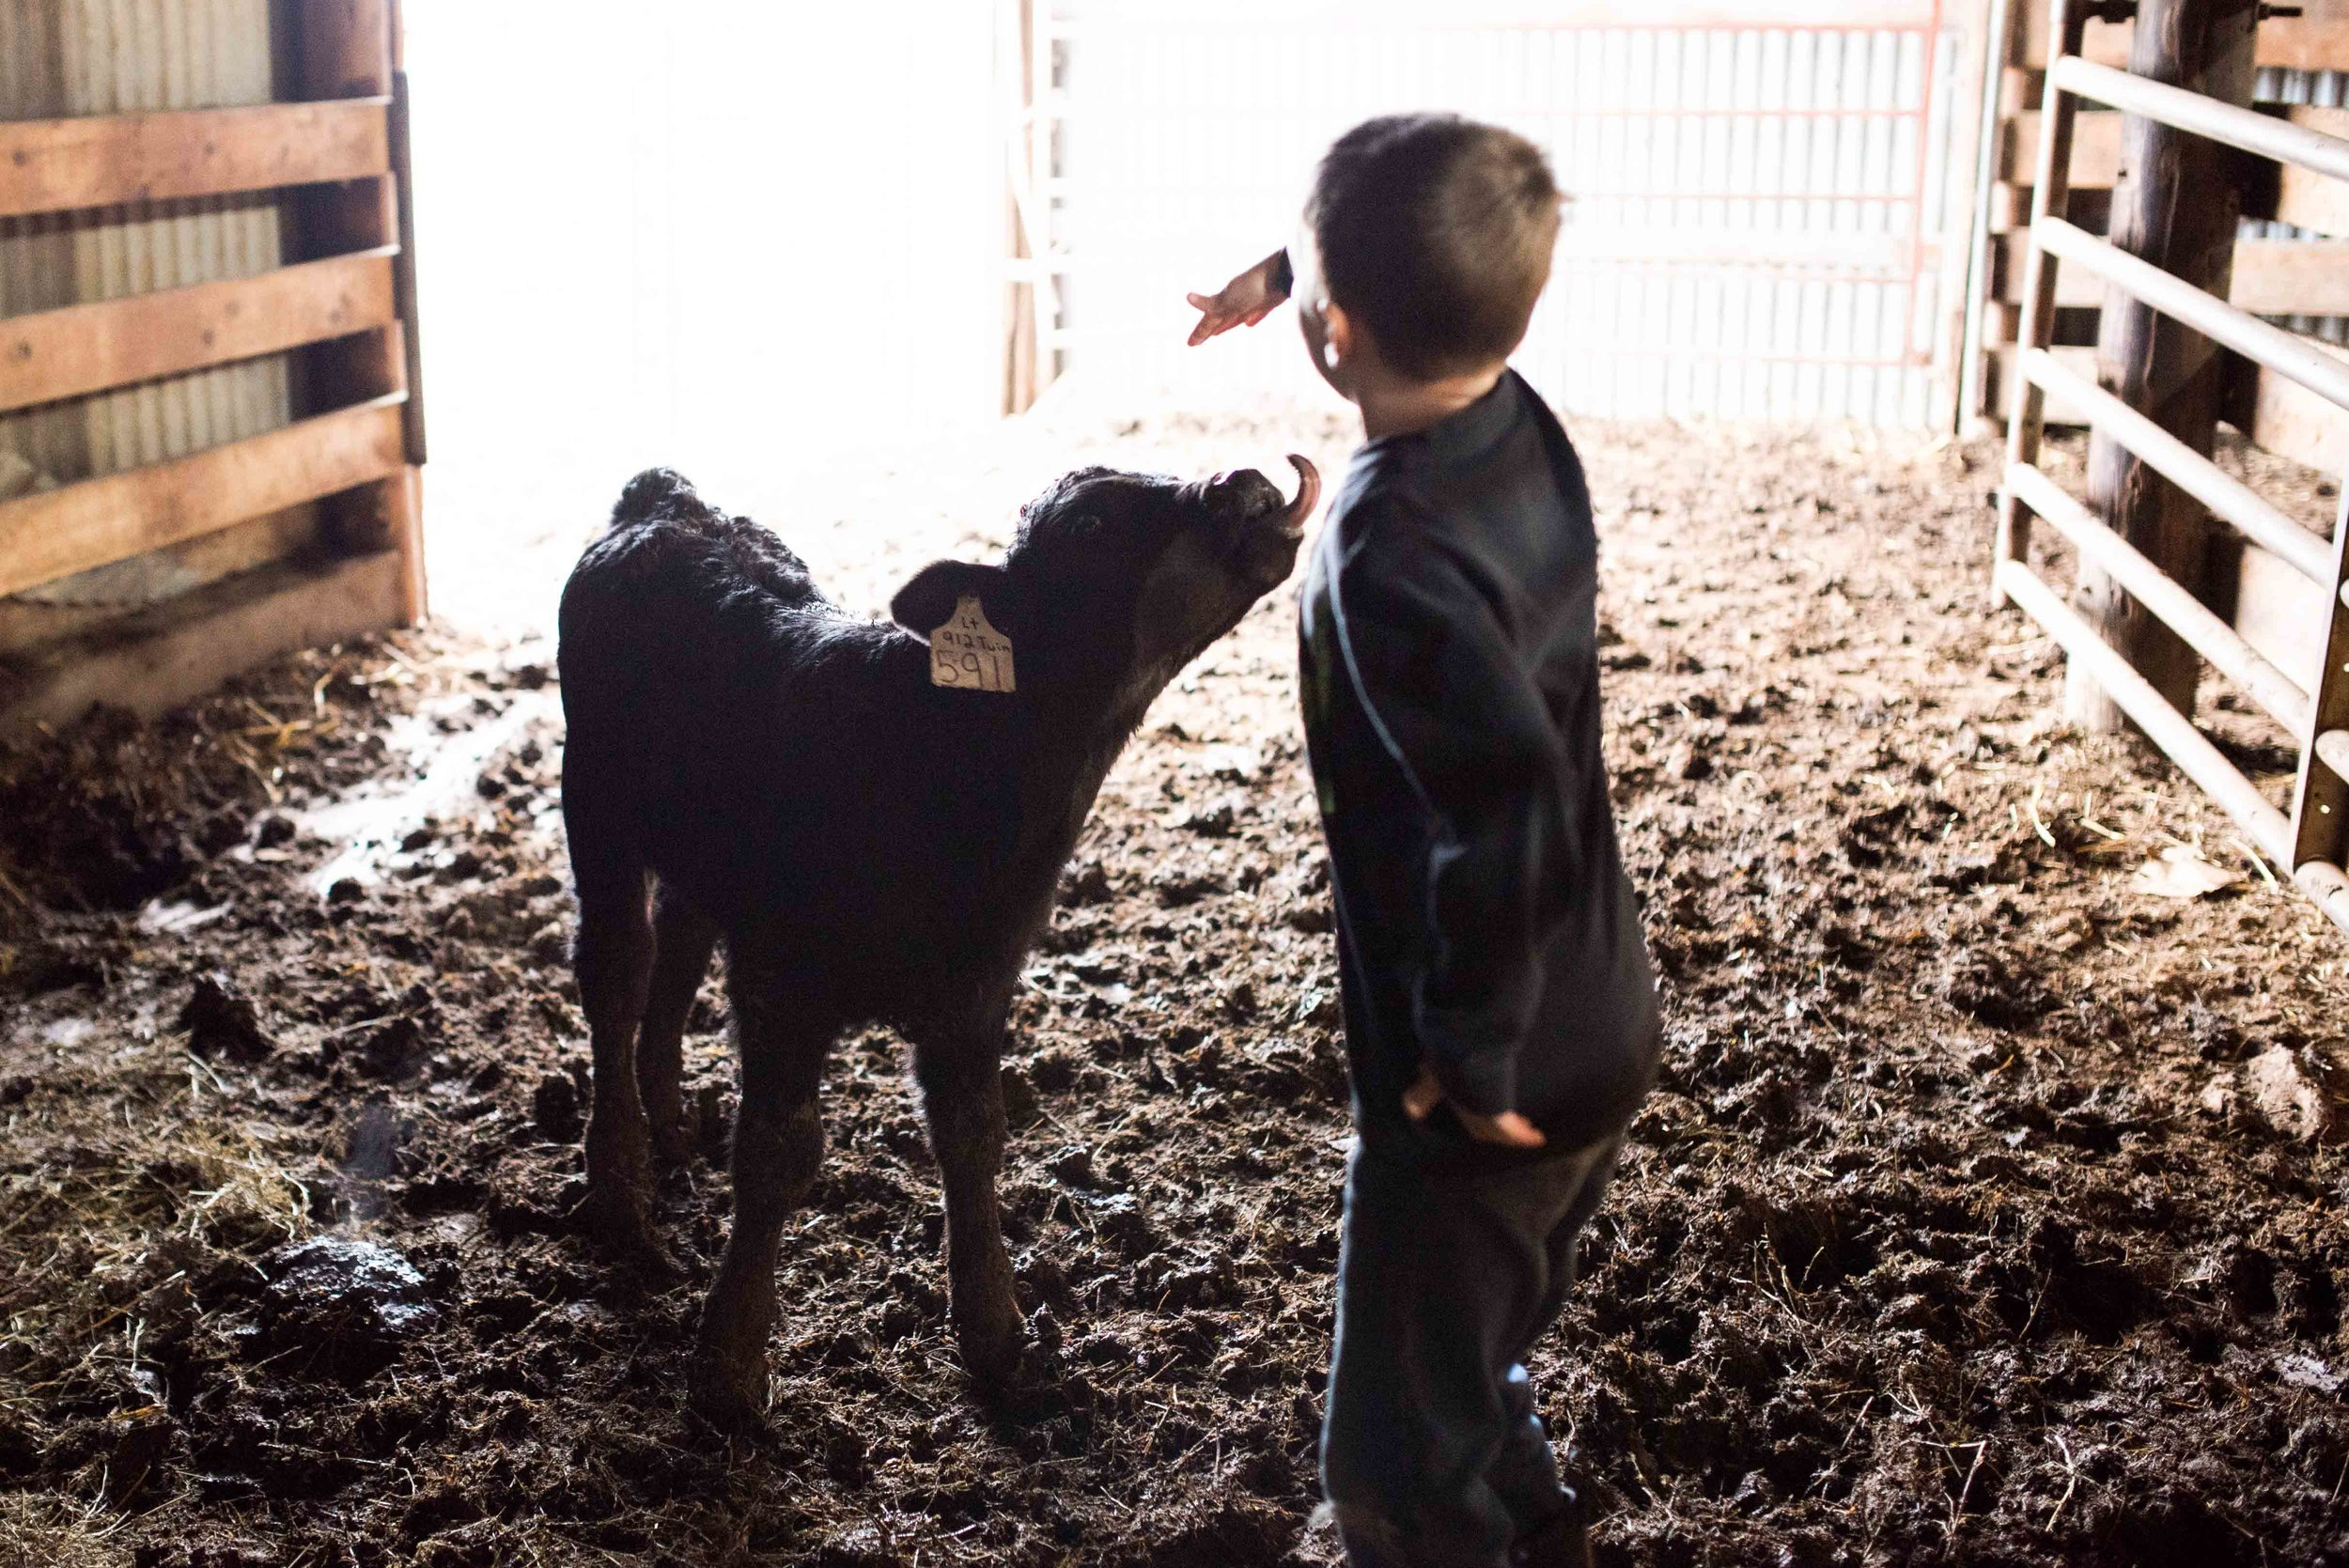 Seven-year-old Wyatt plays with a calf